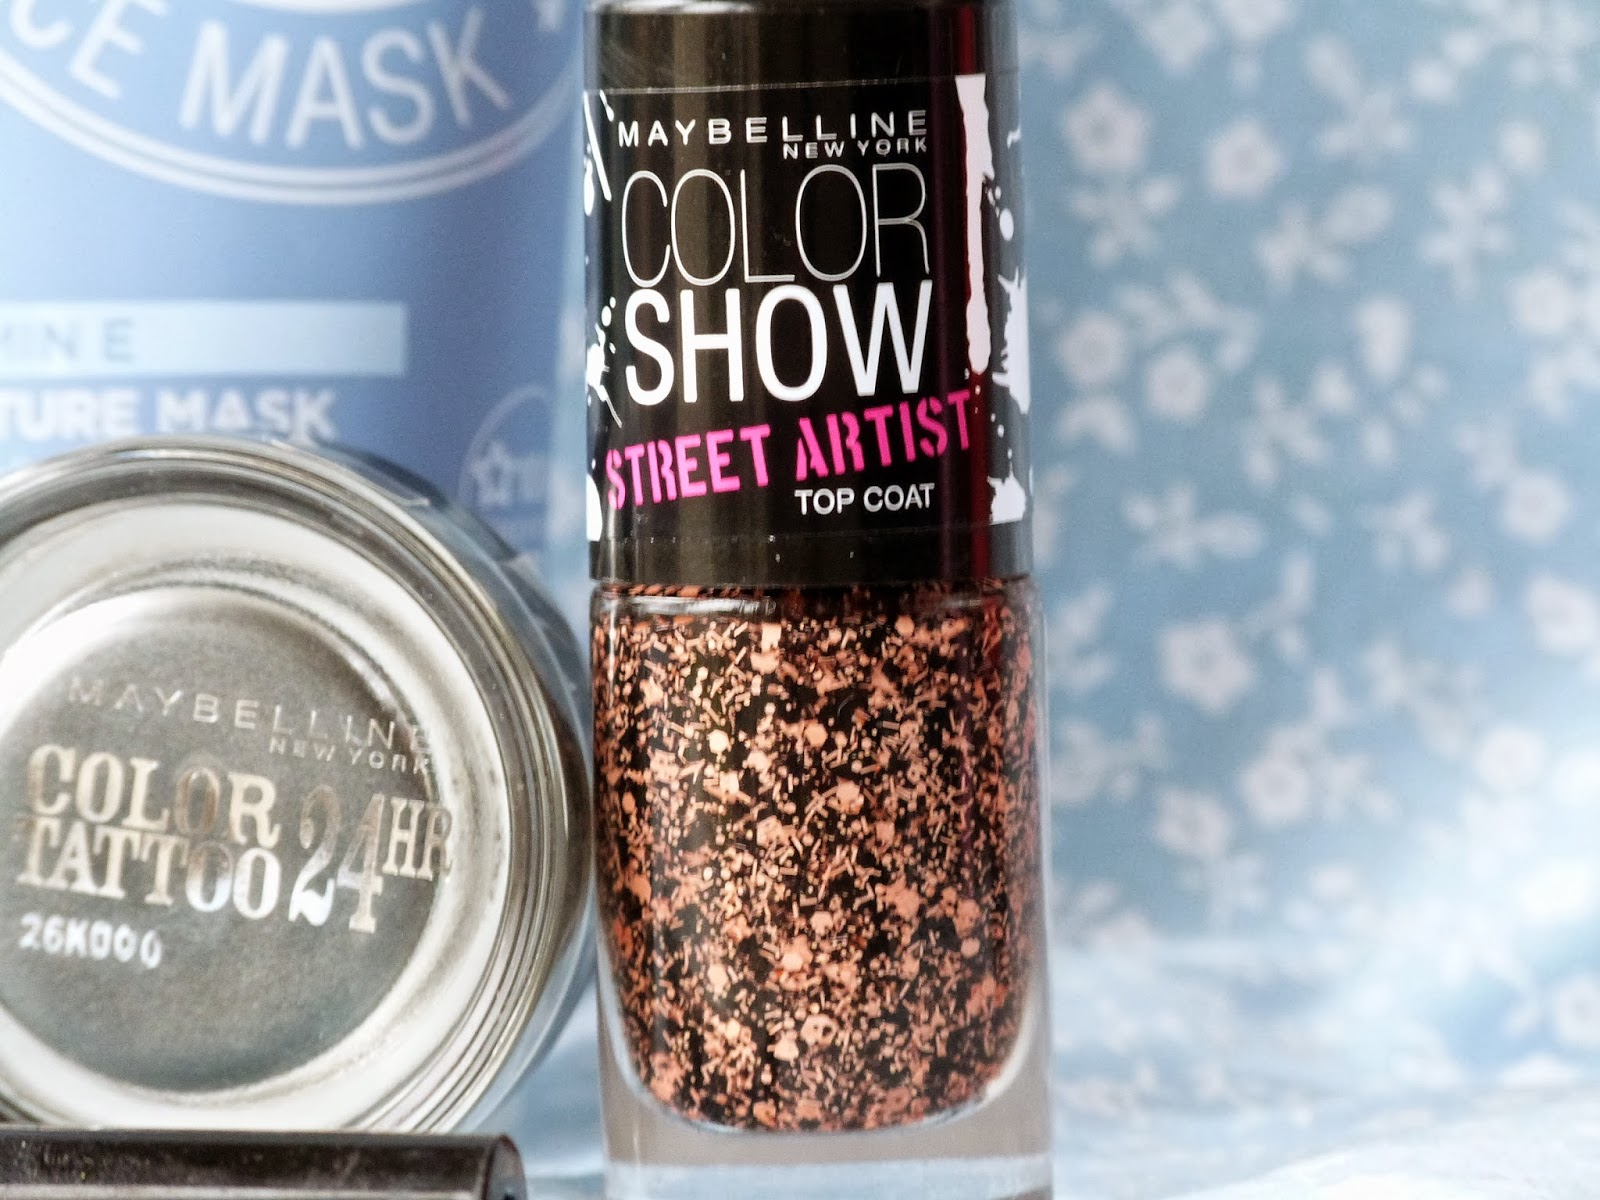 Maybelline Colour Show Street Artist Top Coat in 03 Urban Vibe